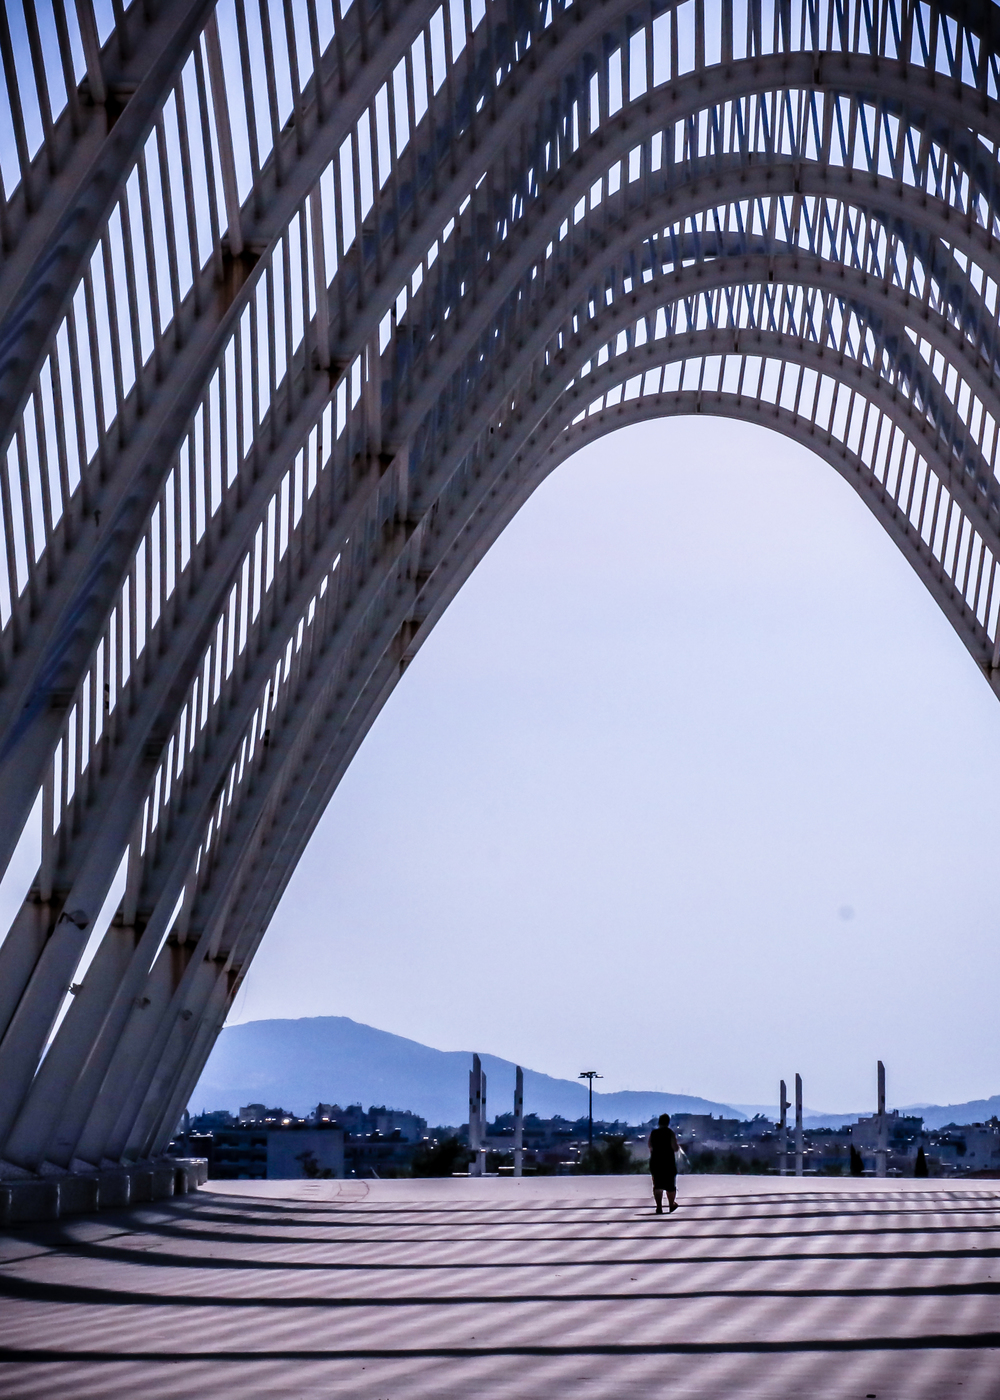 The arches at the Olympic Athletic Center of Athens (Photo: Valev Laube)